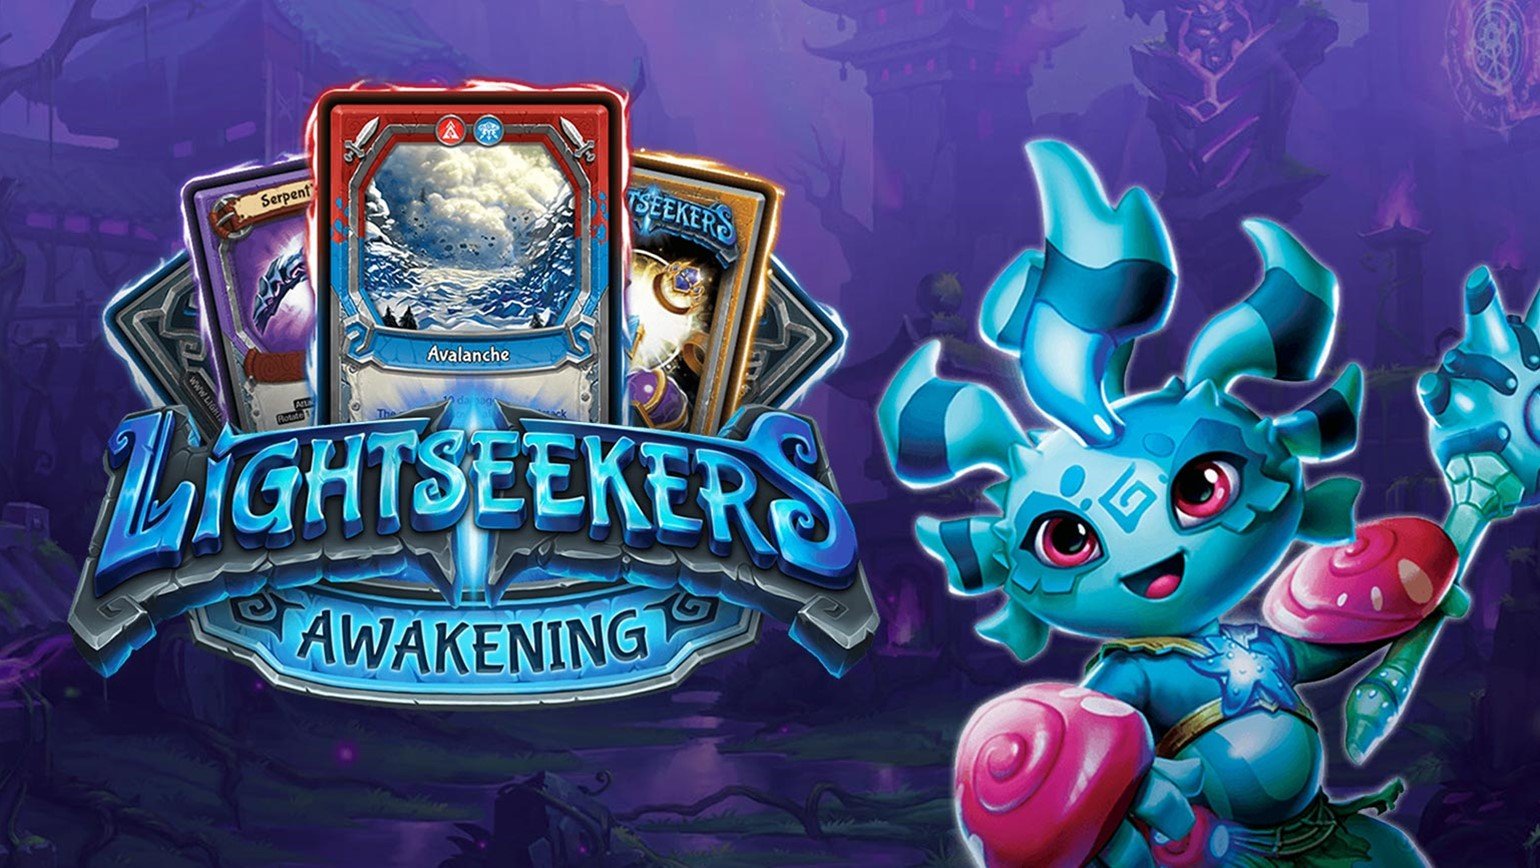 Lightseekers TCG Coming Soon to TCGplayer